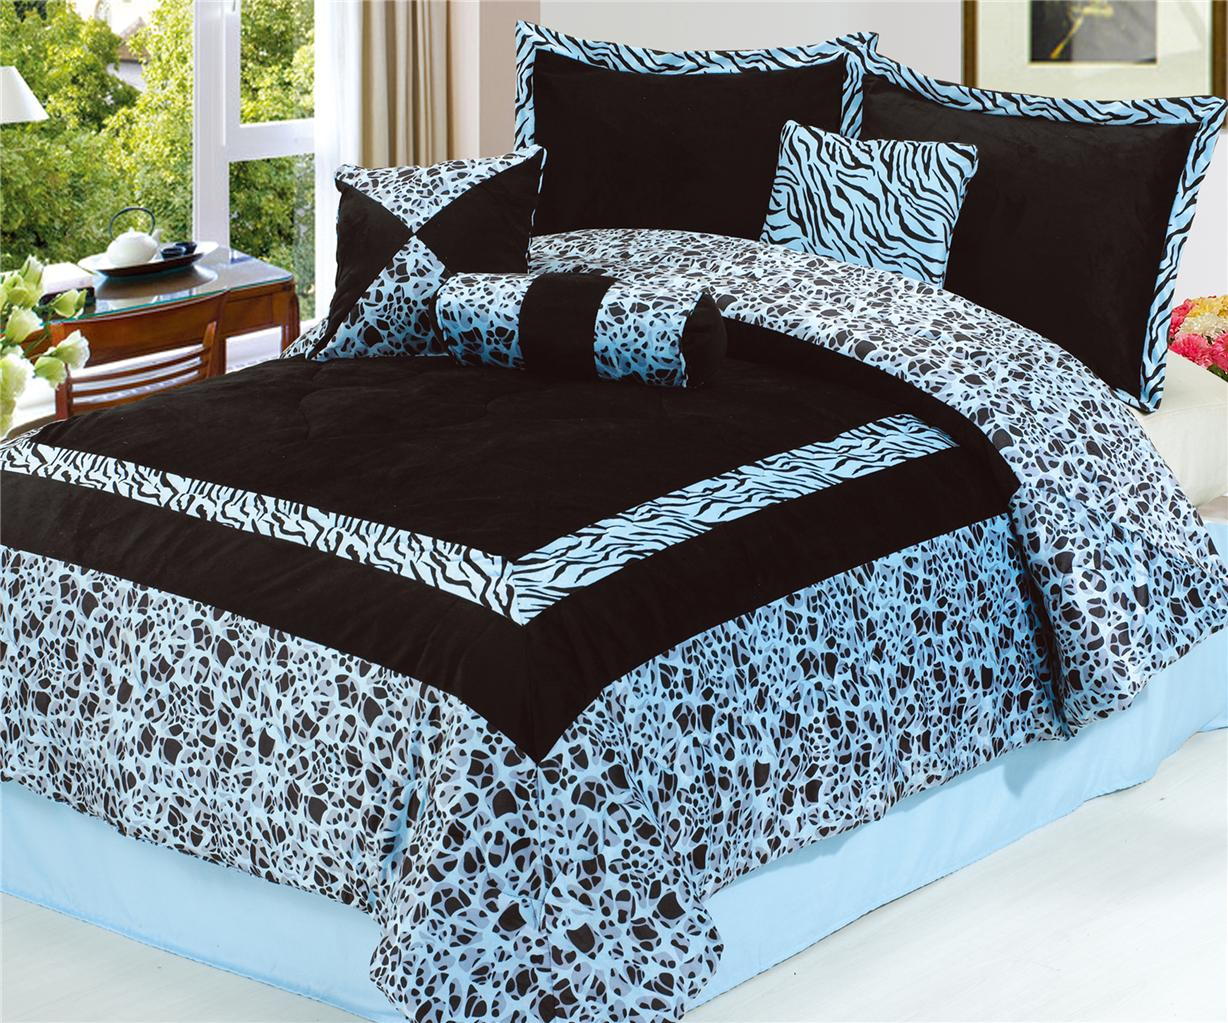 Home amp garden gt bedding gt comforters amp sets gt see more 7 pc faux fur - Safarina Blue 7pc Giraffe Bedspread